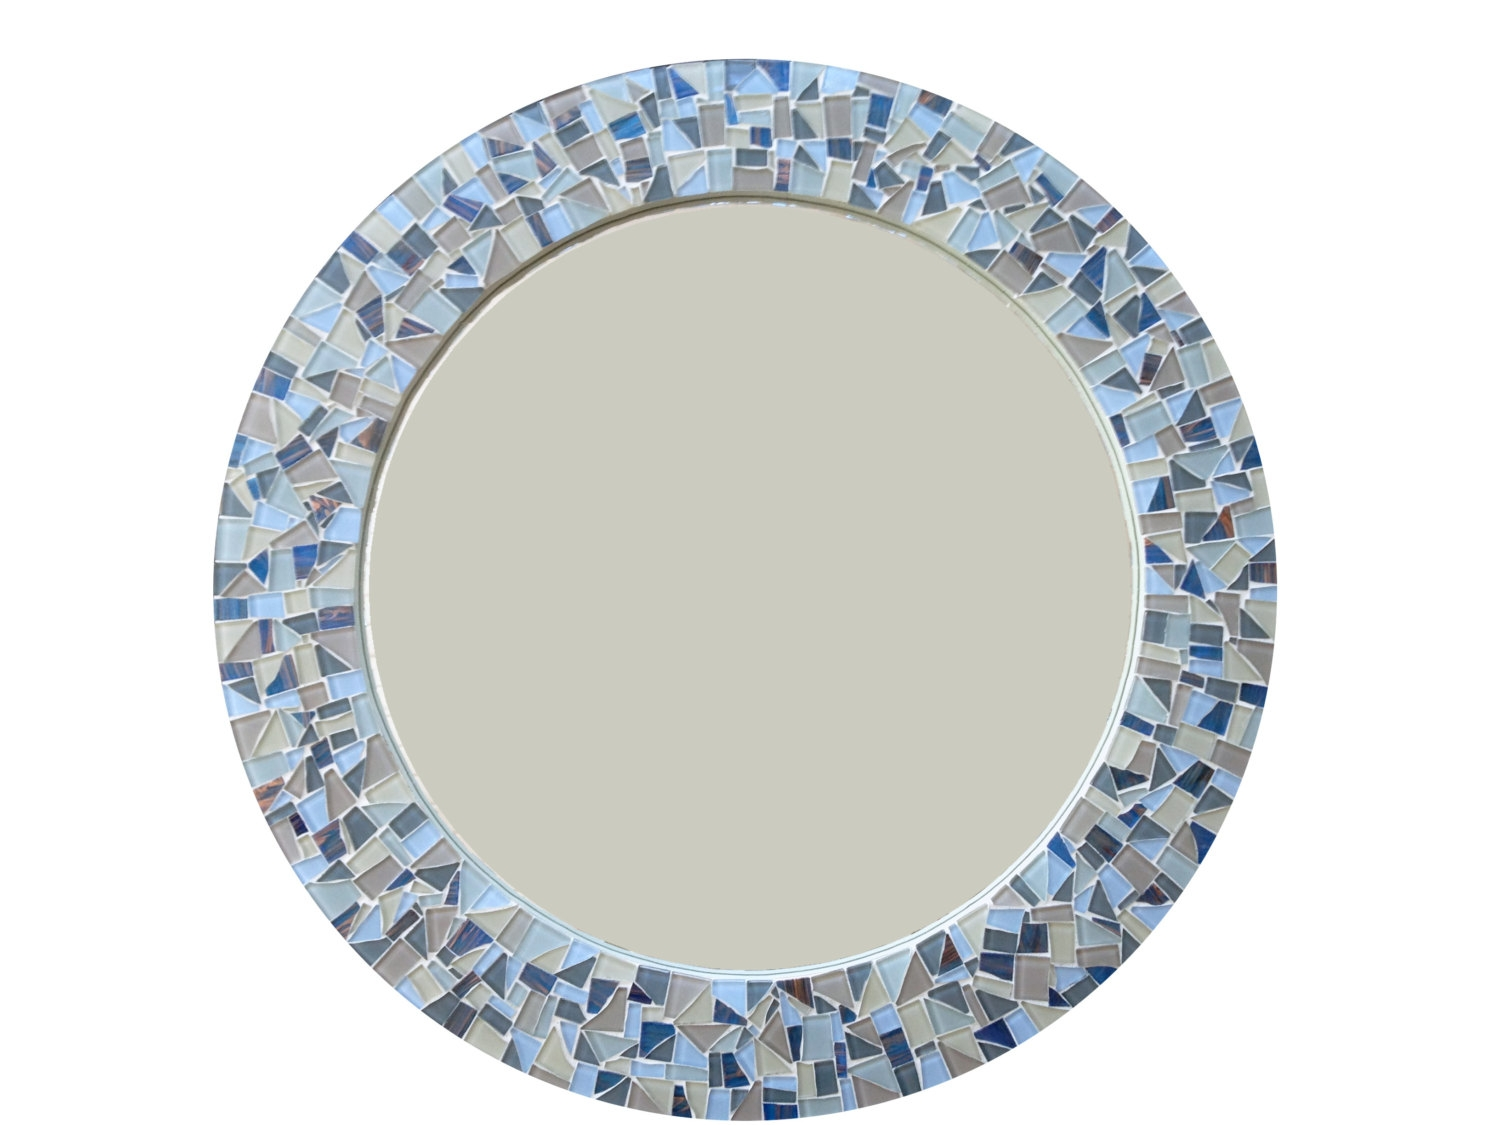 15 ideas of round mosaic wall mirror mirror ideas round mirror mosaic wall mirror blue gray and tan cottage inside round mosaic wall mirror amipublicfo Image collections